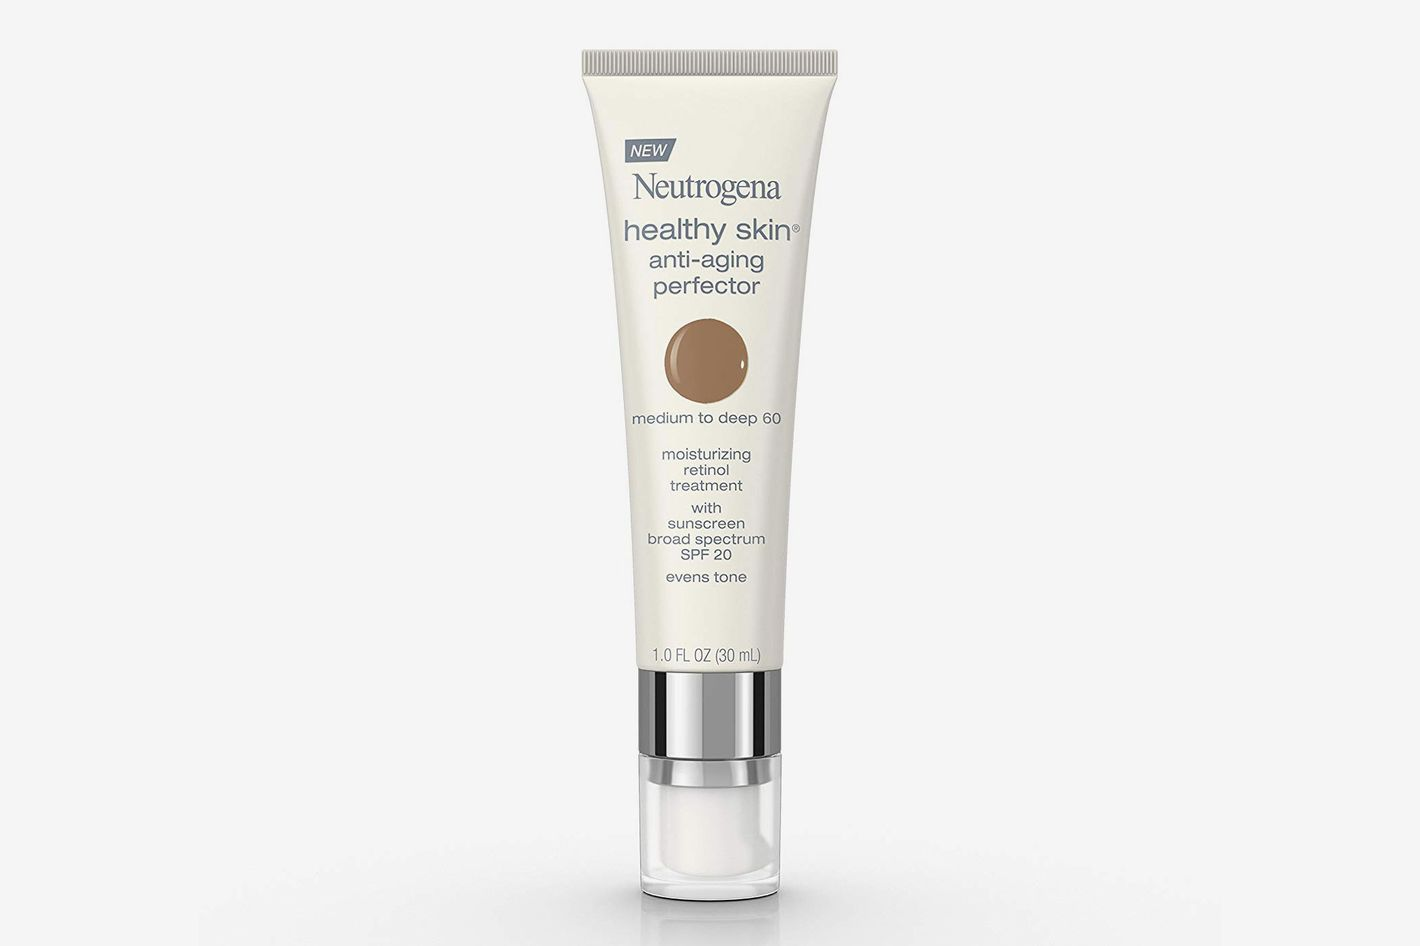 Neutrogena SPF 20 in Medium to Deep